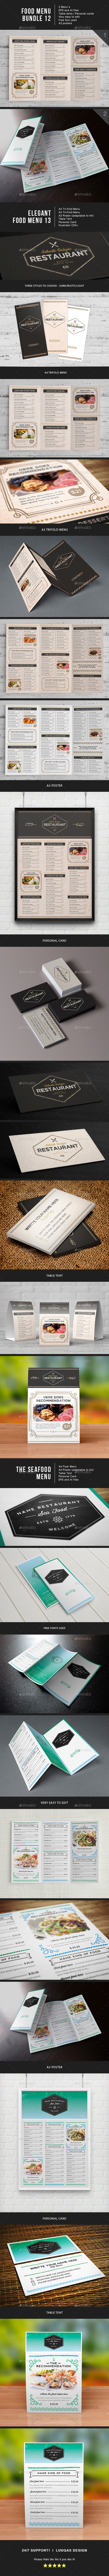 GraphicRiver Food Menu Bundle 12 8974323